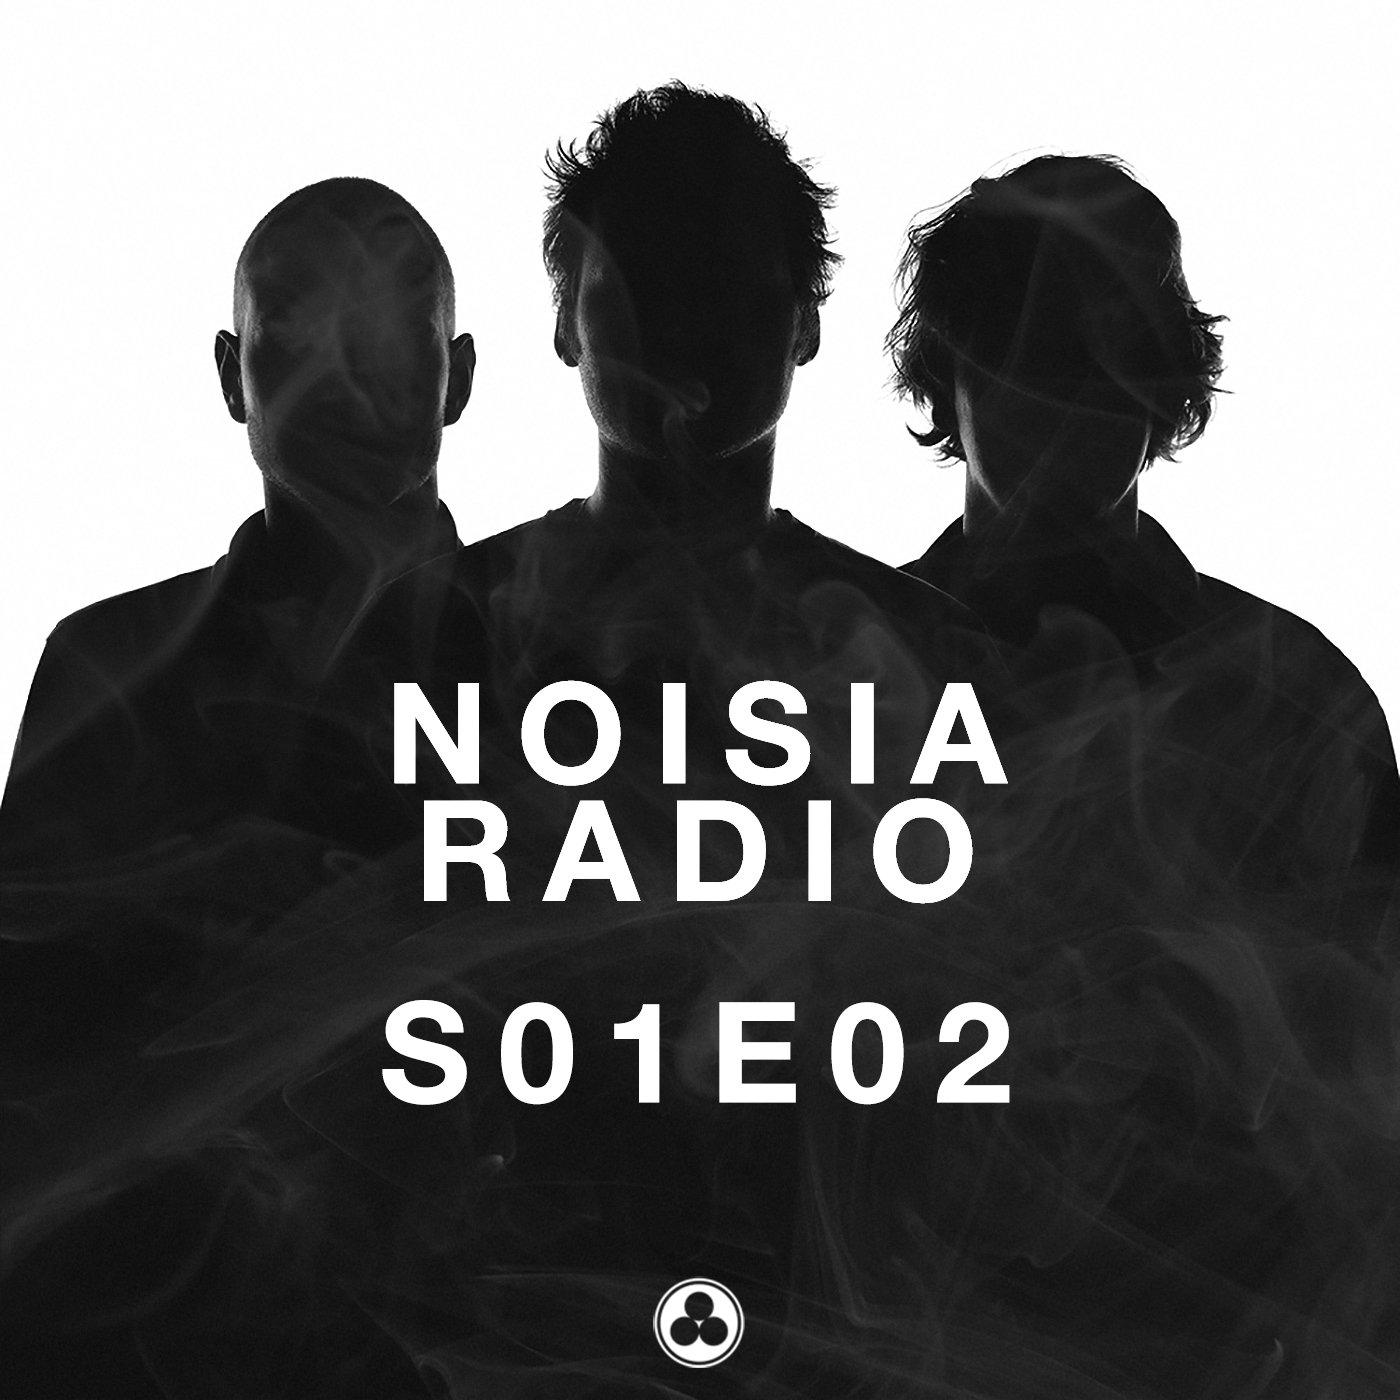 Noisia Radio S01E02